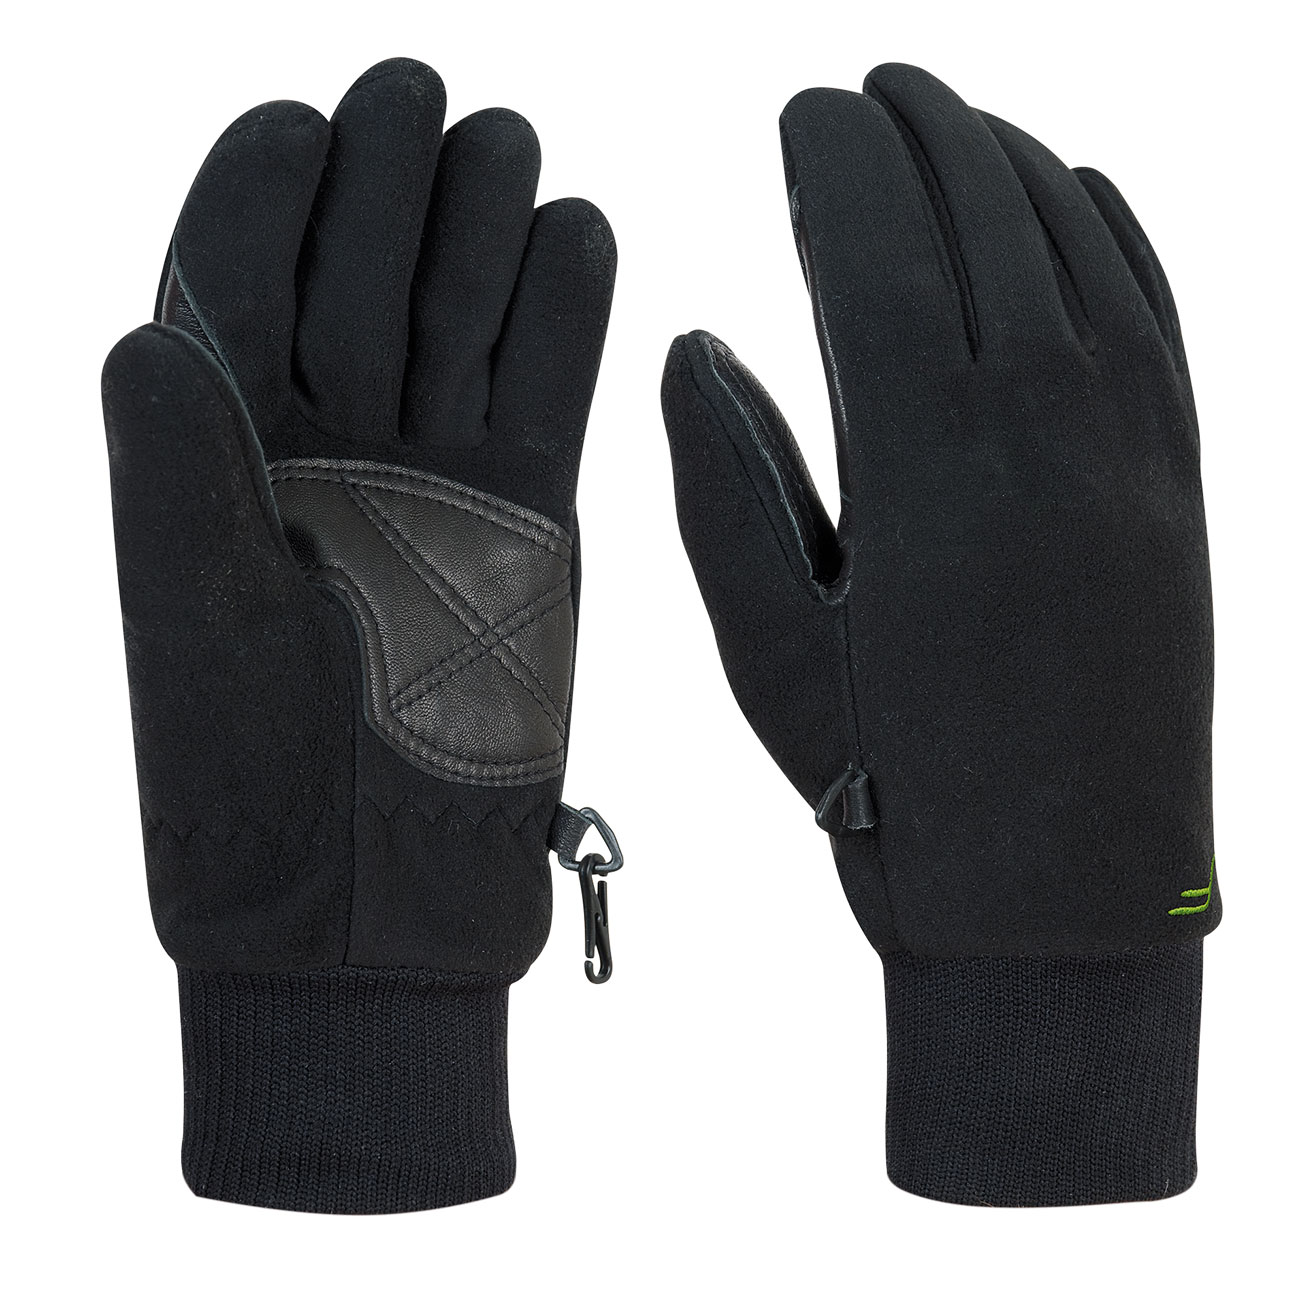 F-Lite Fleece Handschuh Waterproof schwarz 0